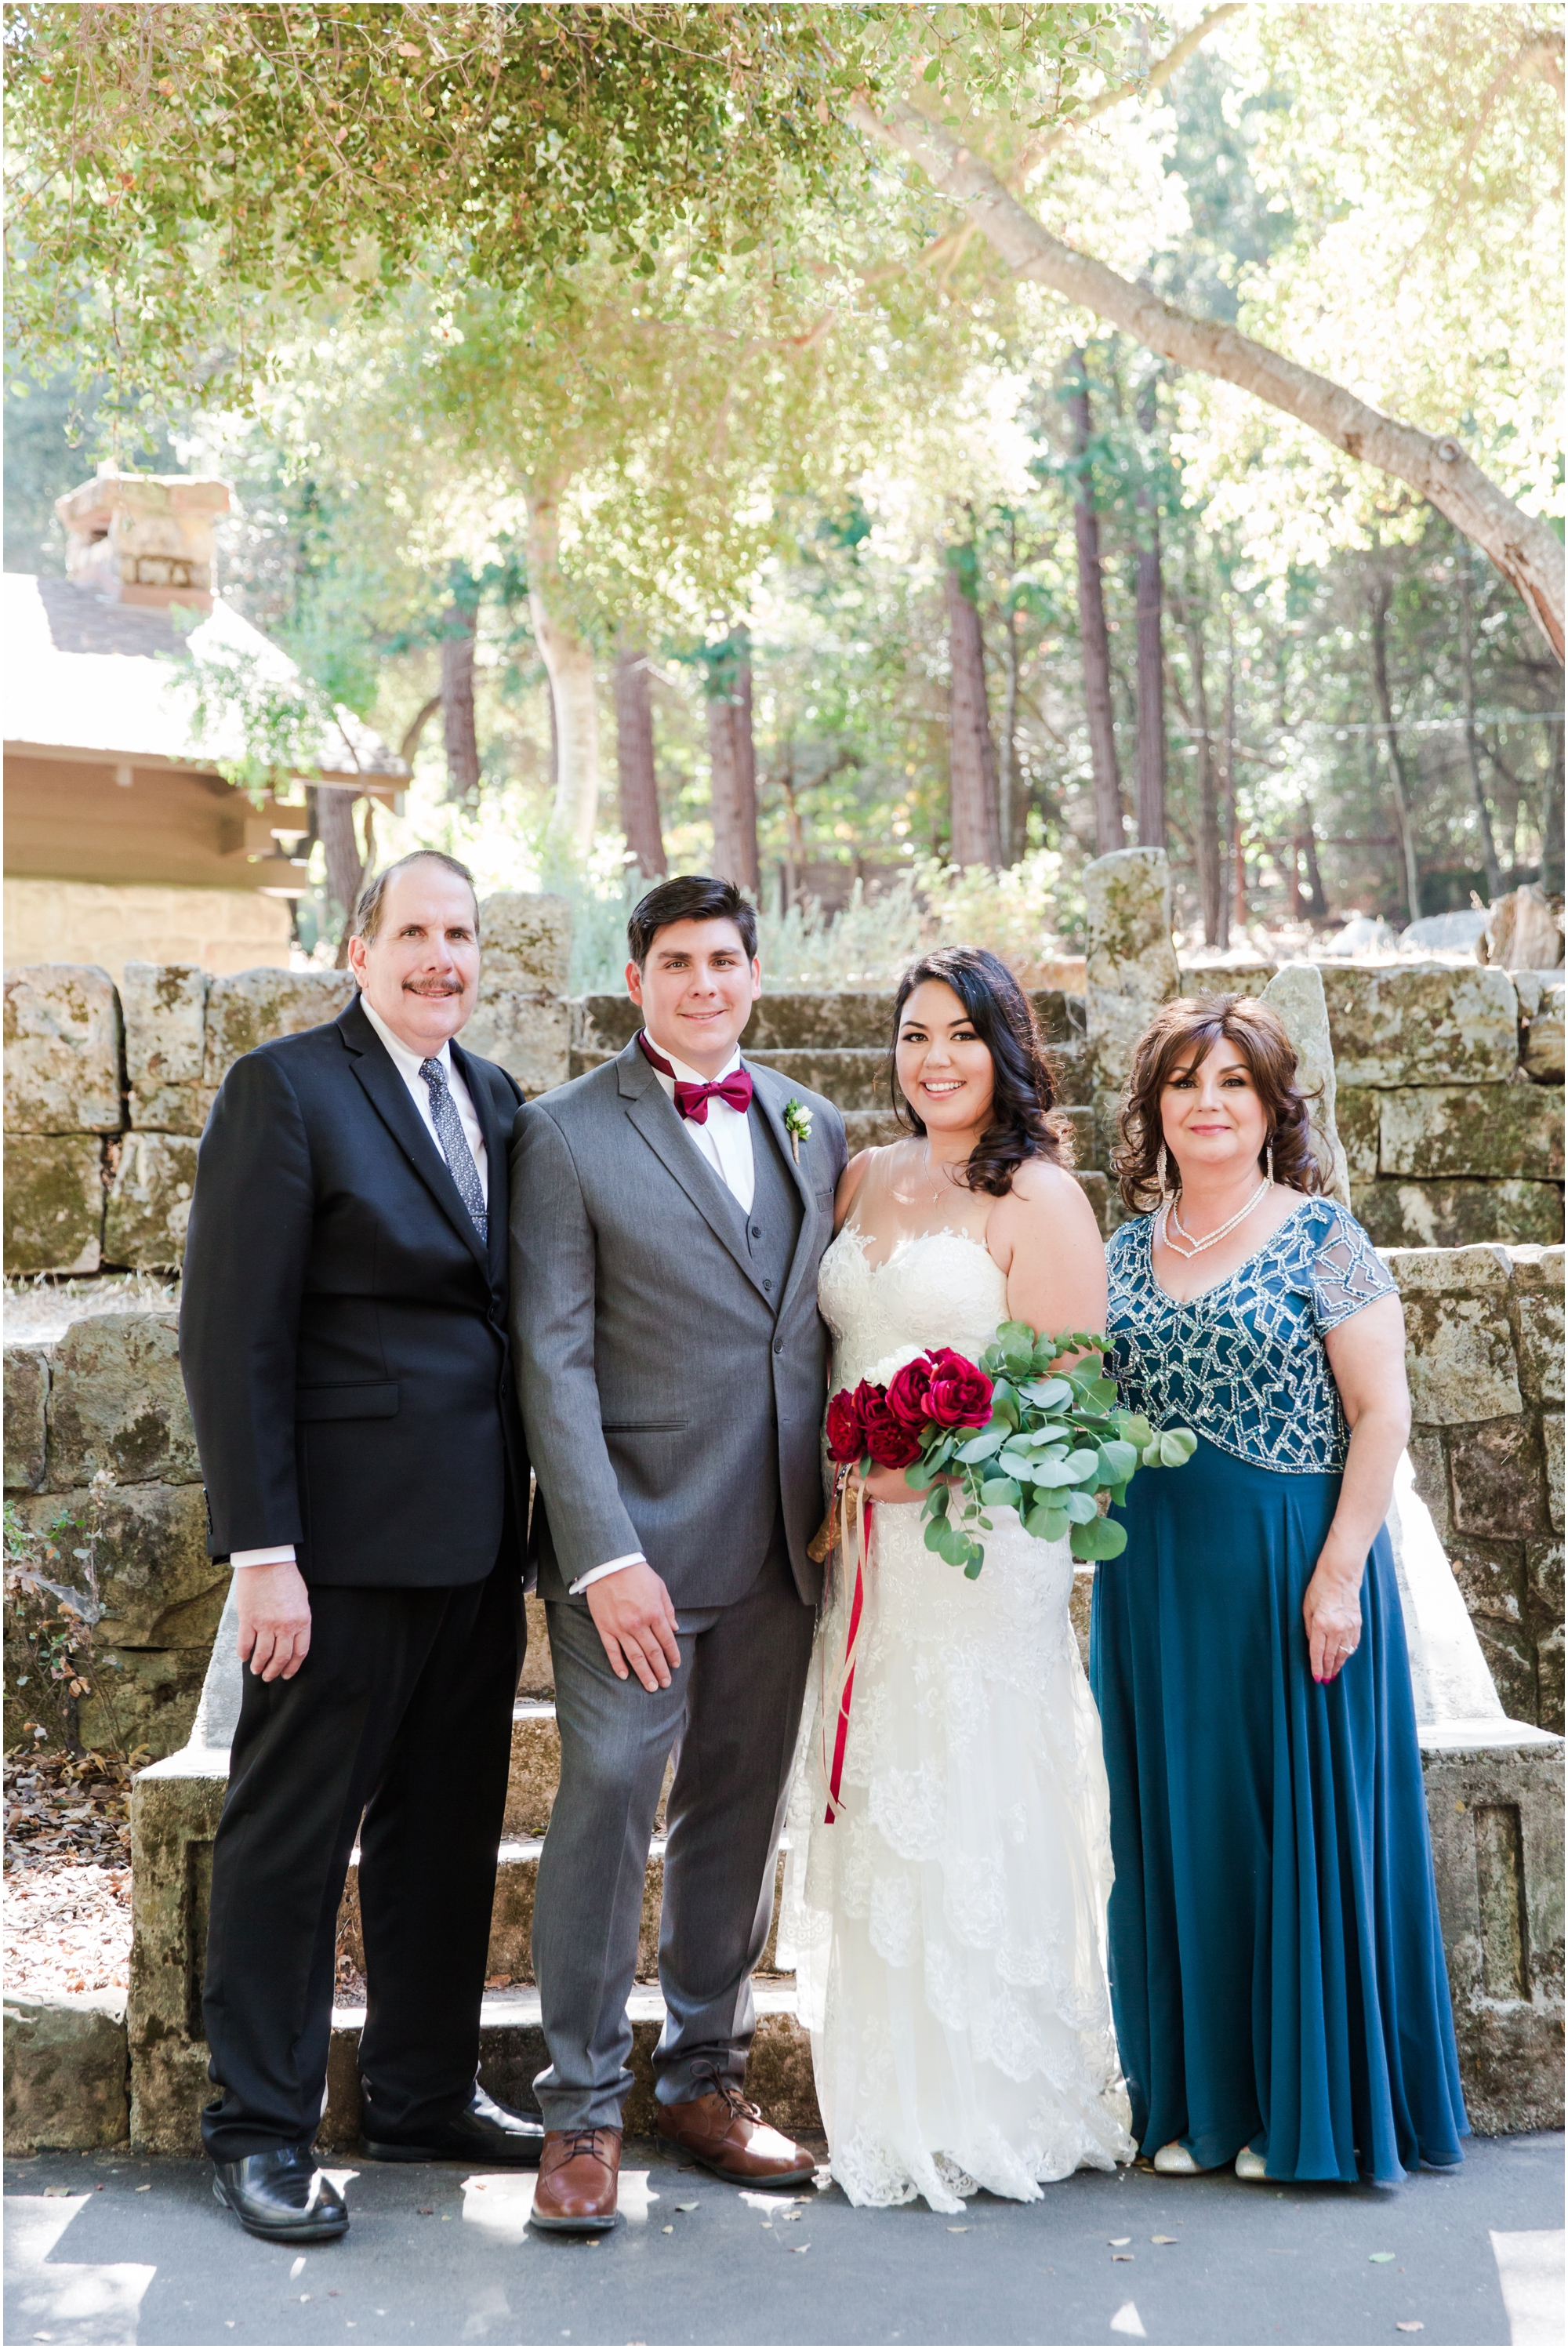 Sanborn Park Saratoga wedding pictures by Briana Calderon Photography_0134.jpg